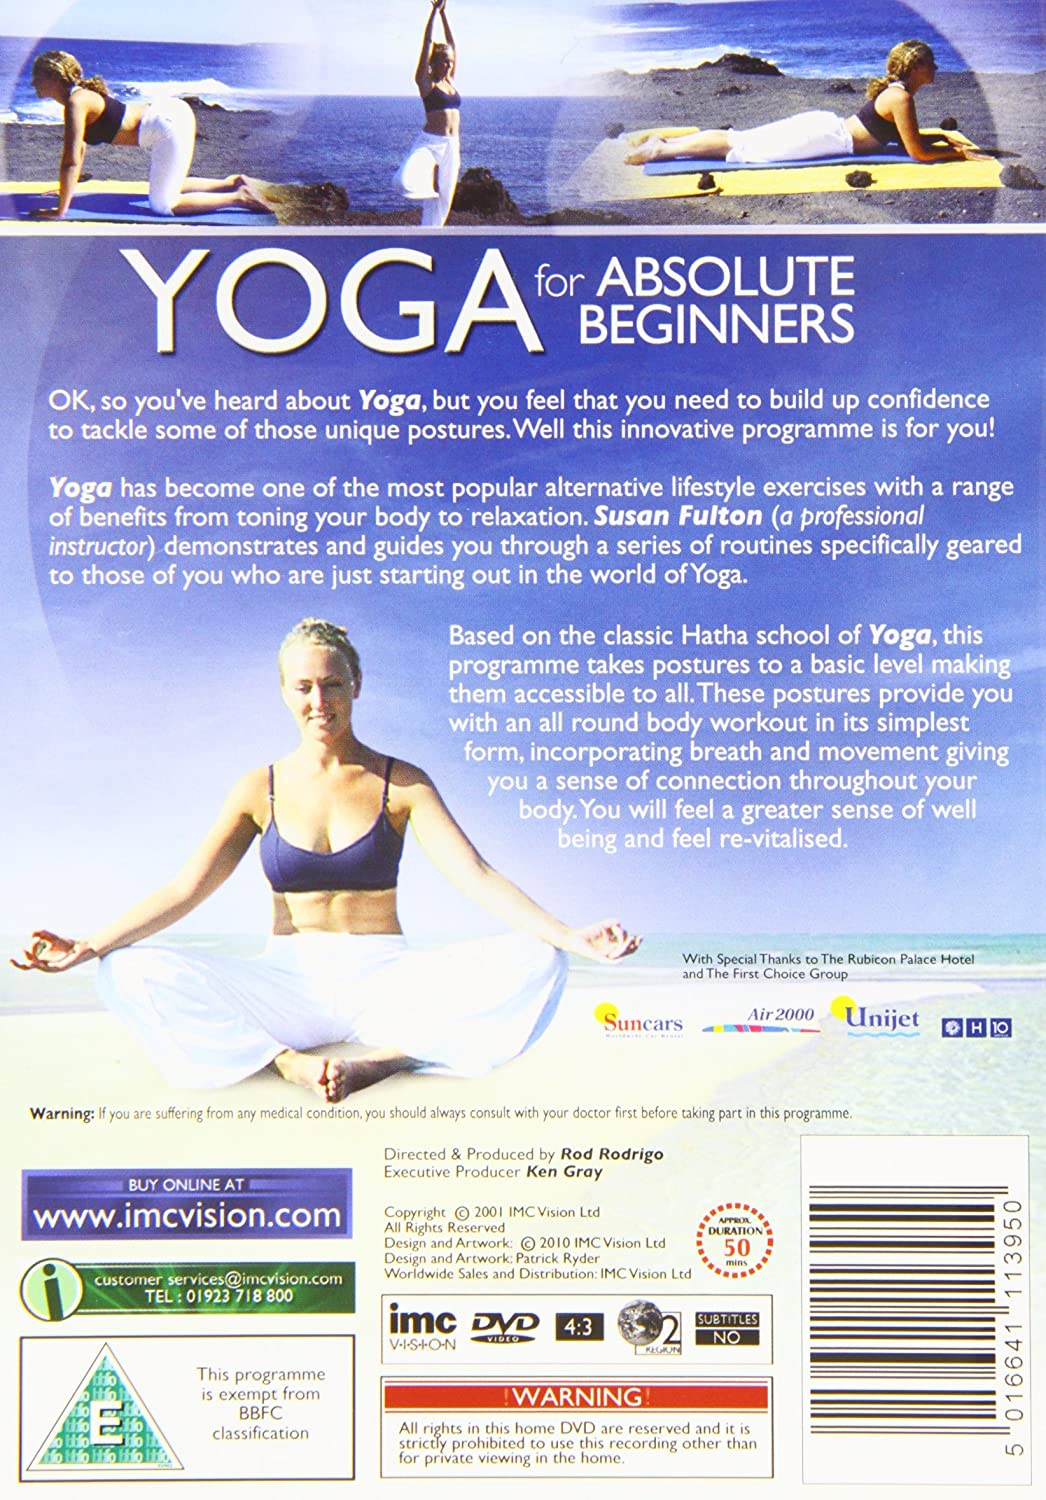 Yoga For Absolute Beginners - Hatha Yoga - Fit For Life ...